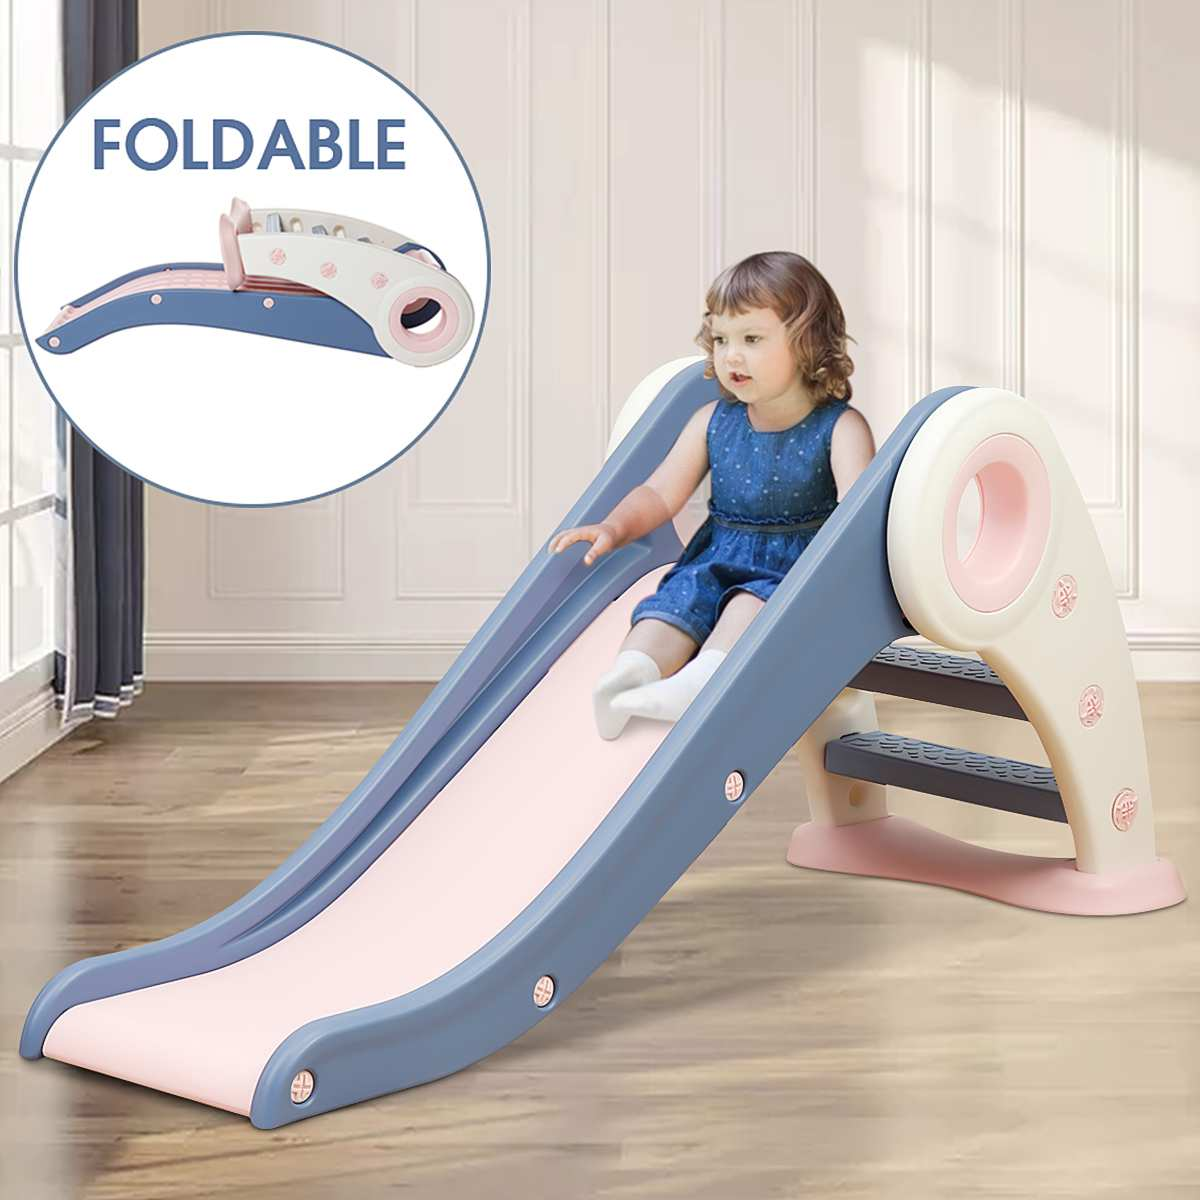 Foldable Children's Toddler Climber Slide With Easy Climb Stairs toddler Small Amusement Park Toys B